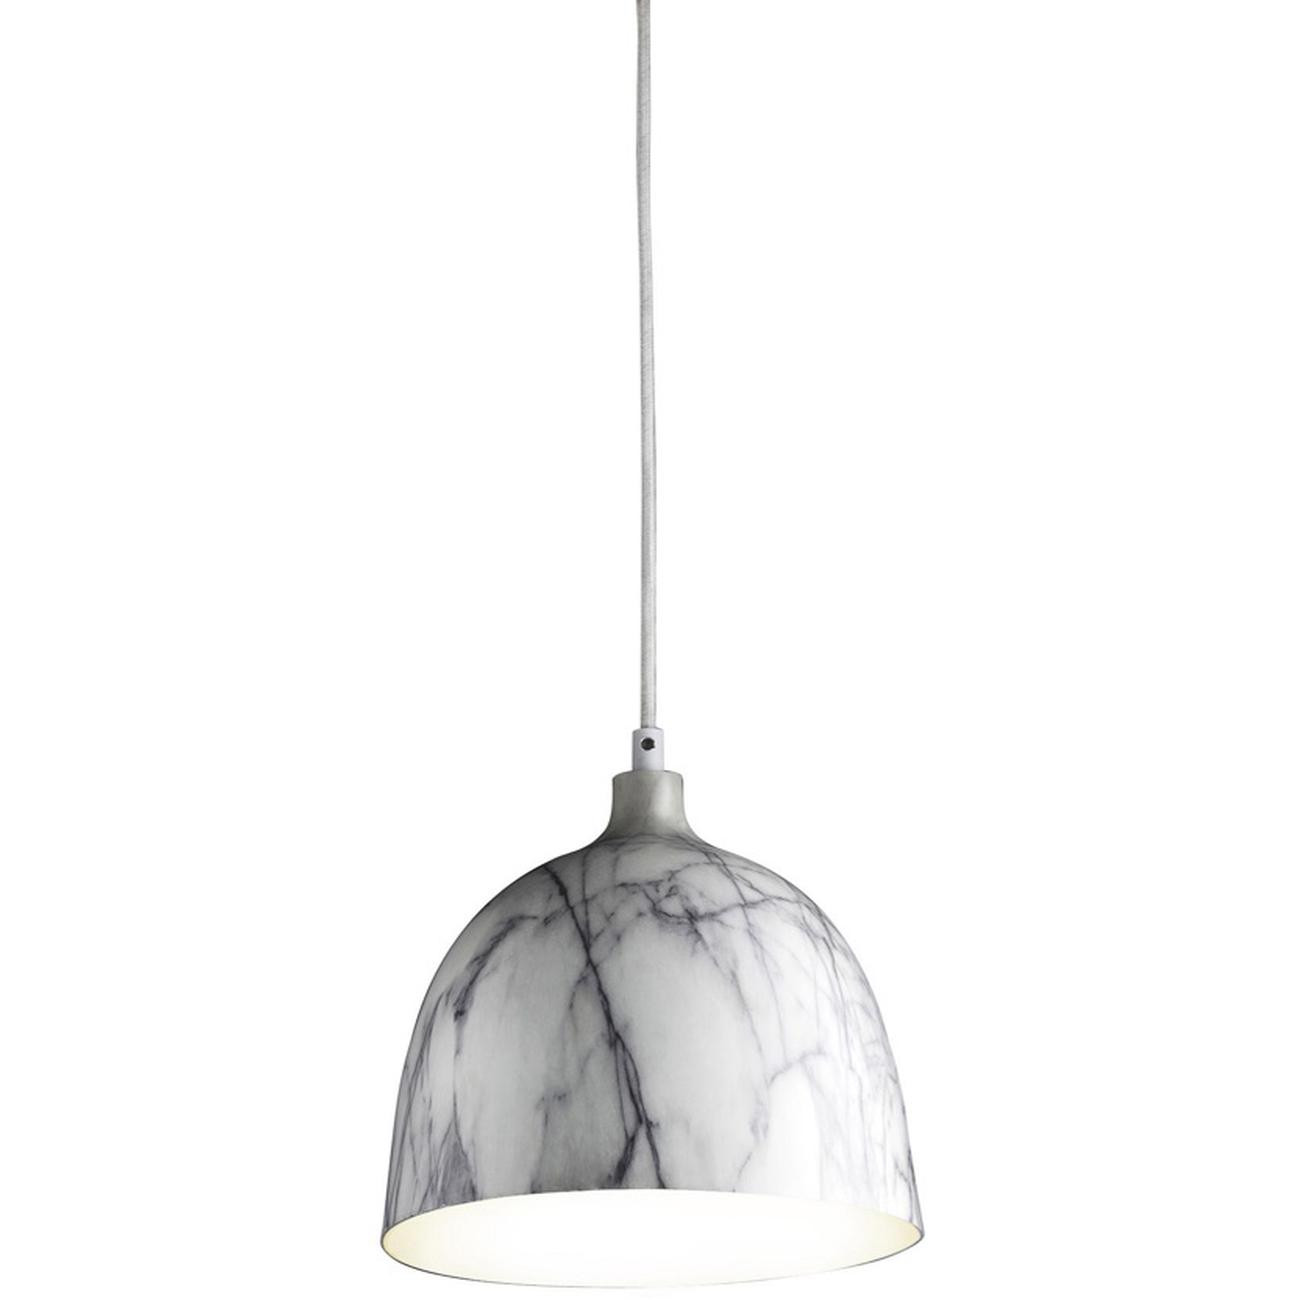 Suspension MARBEL gris et blanc